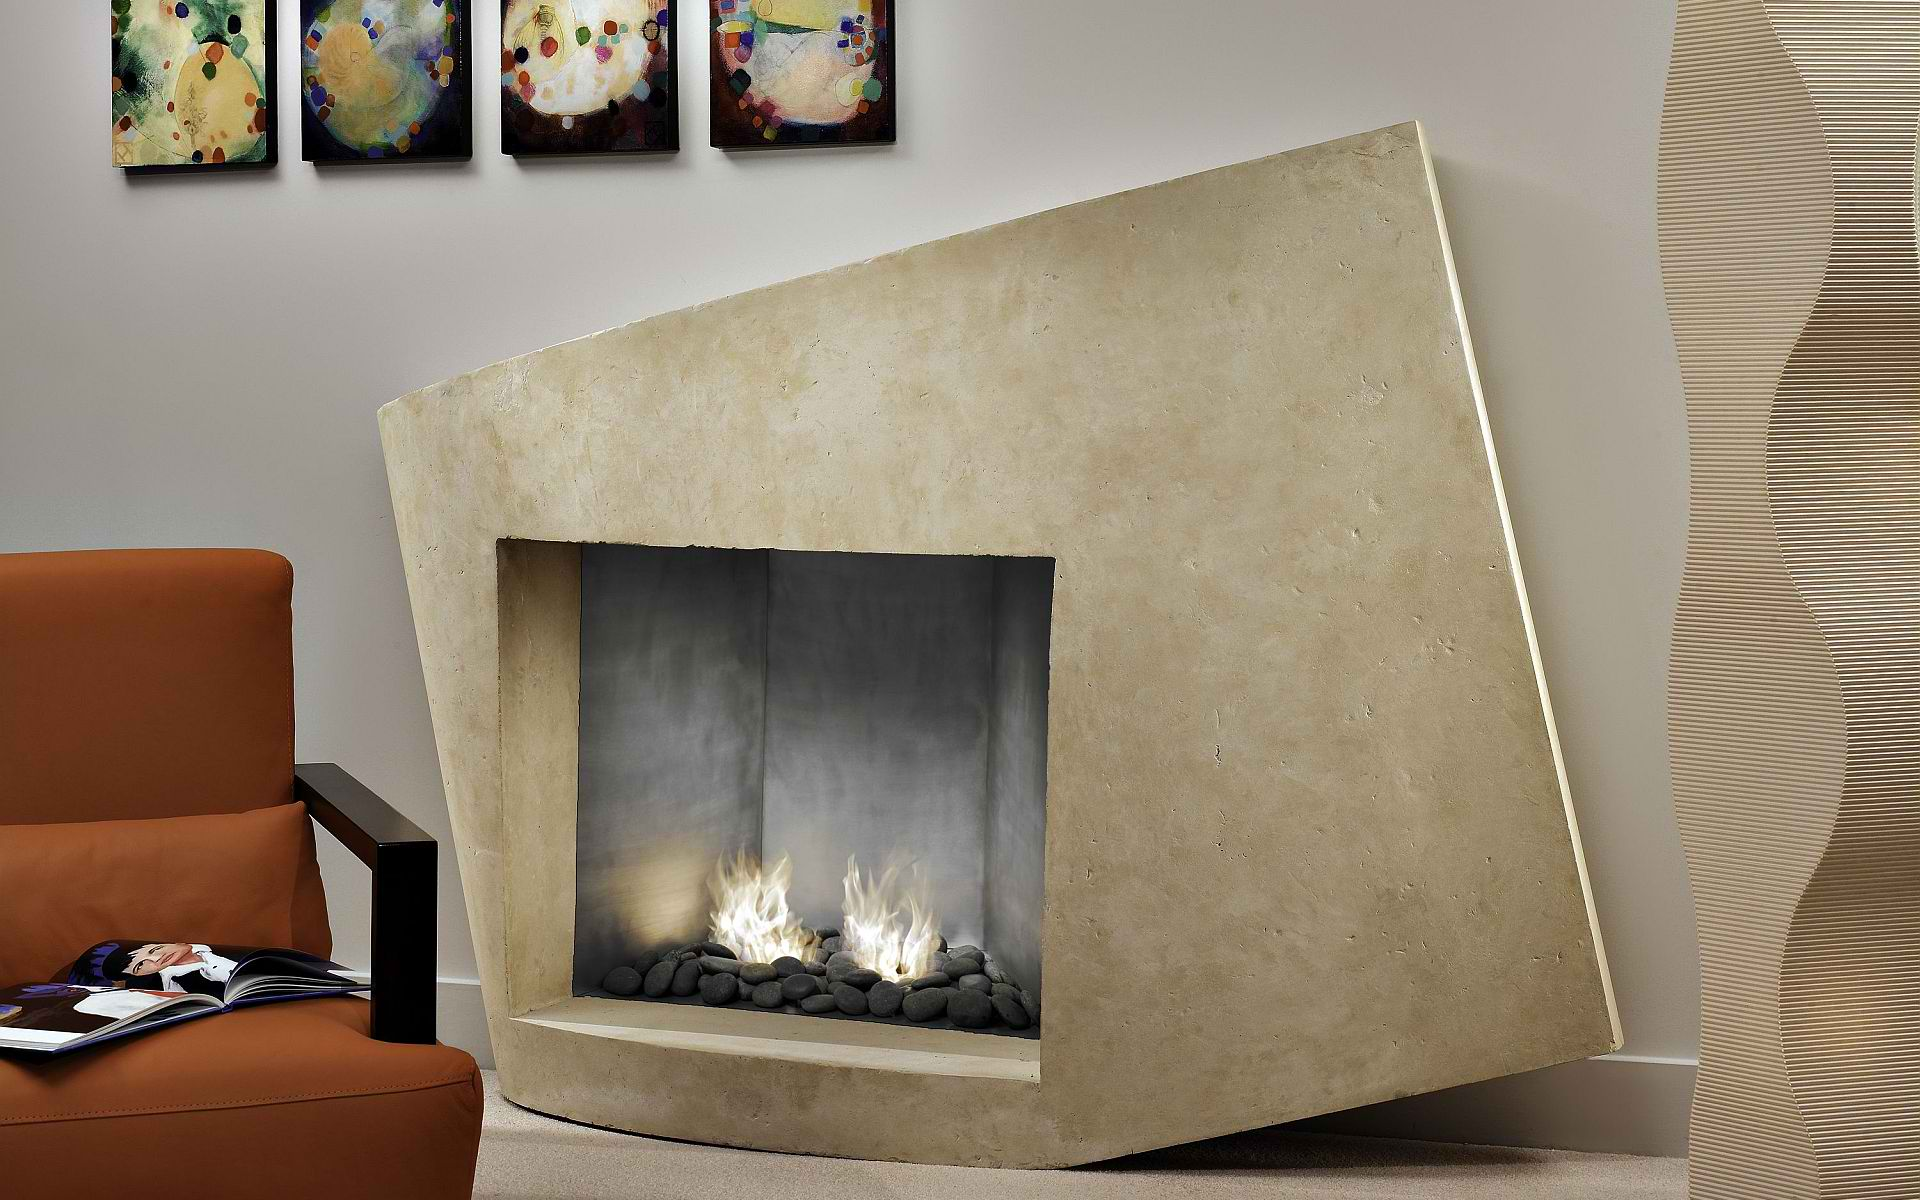 Contemporary Fireplace Mantels 1920 x 1200